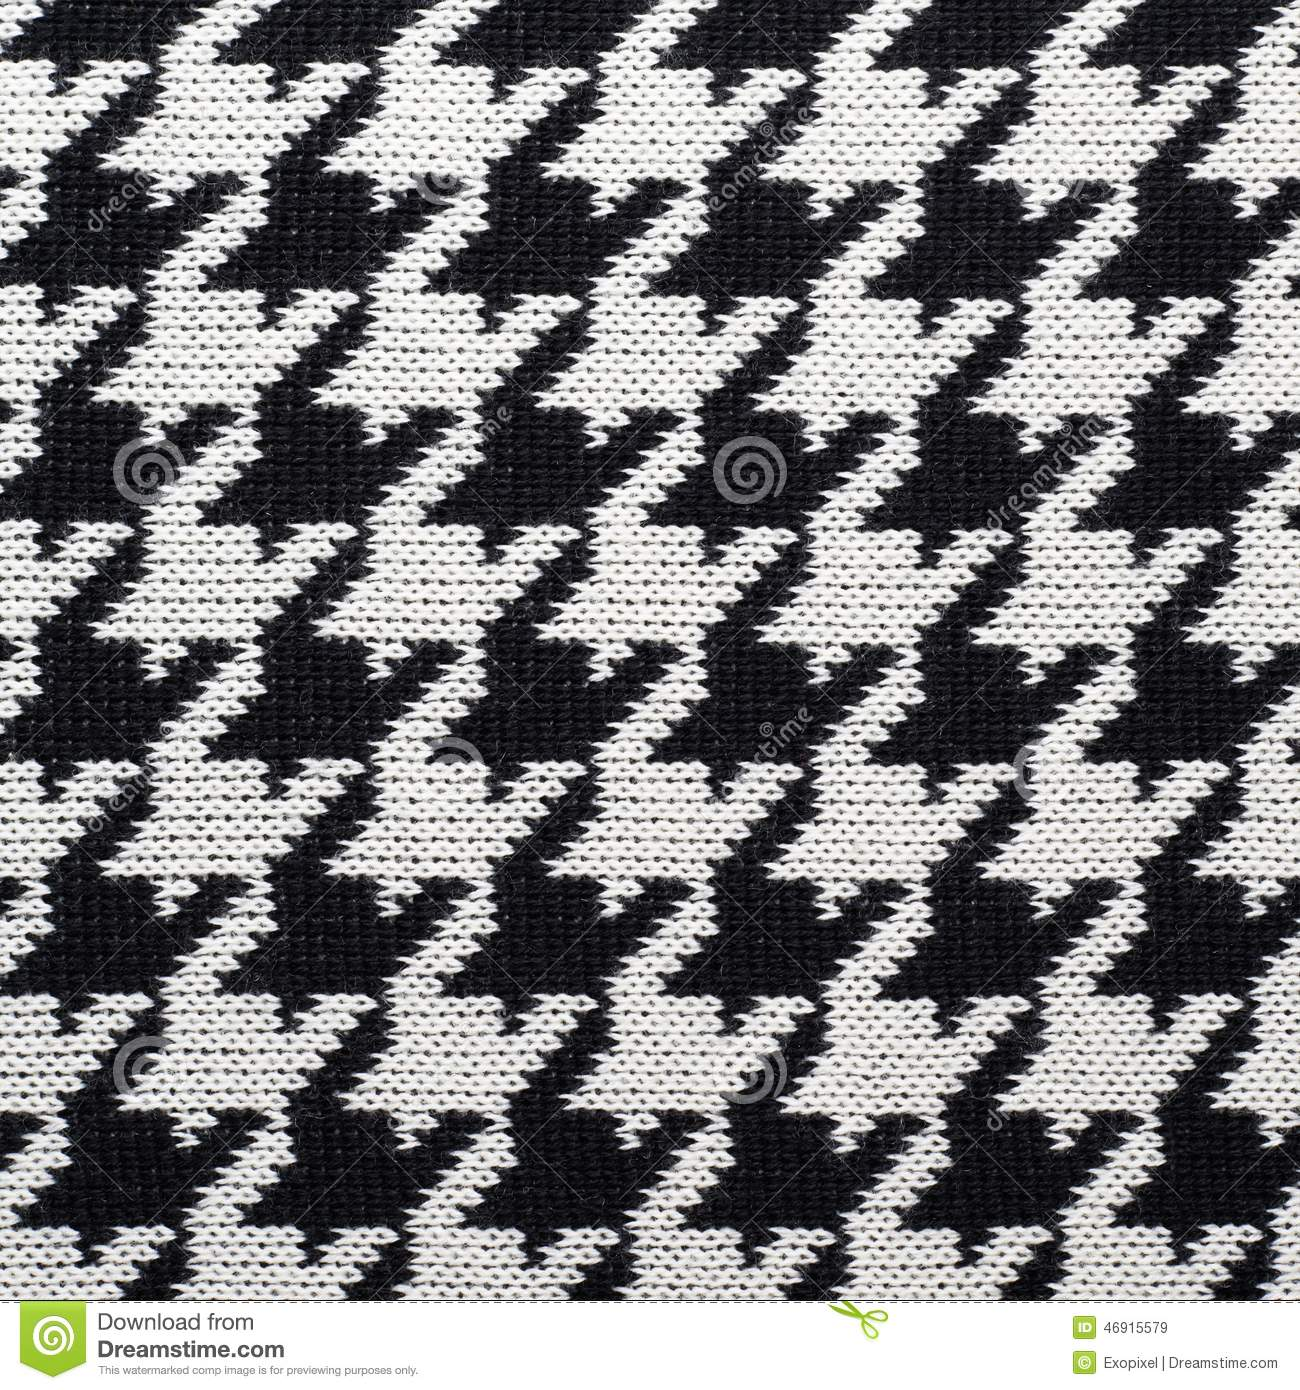 Black And White Knitted Houndstooth Pattern Stock Image - Image of ...